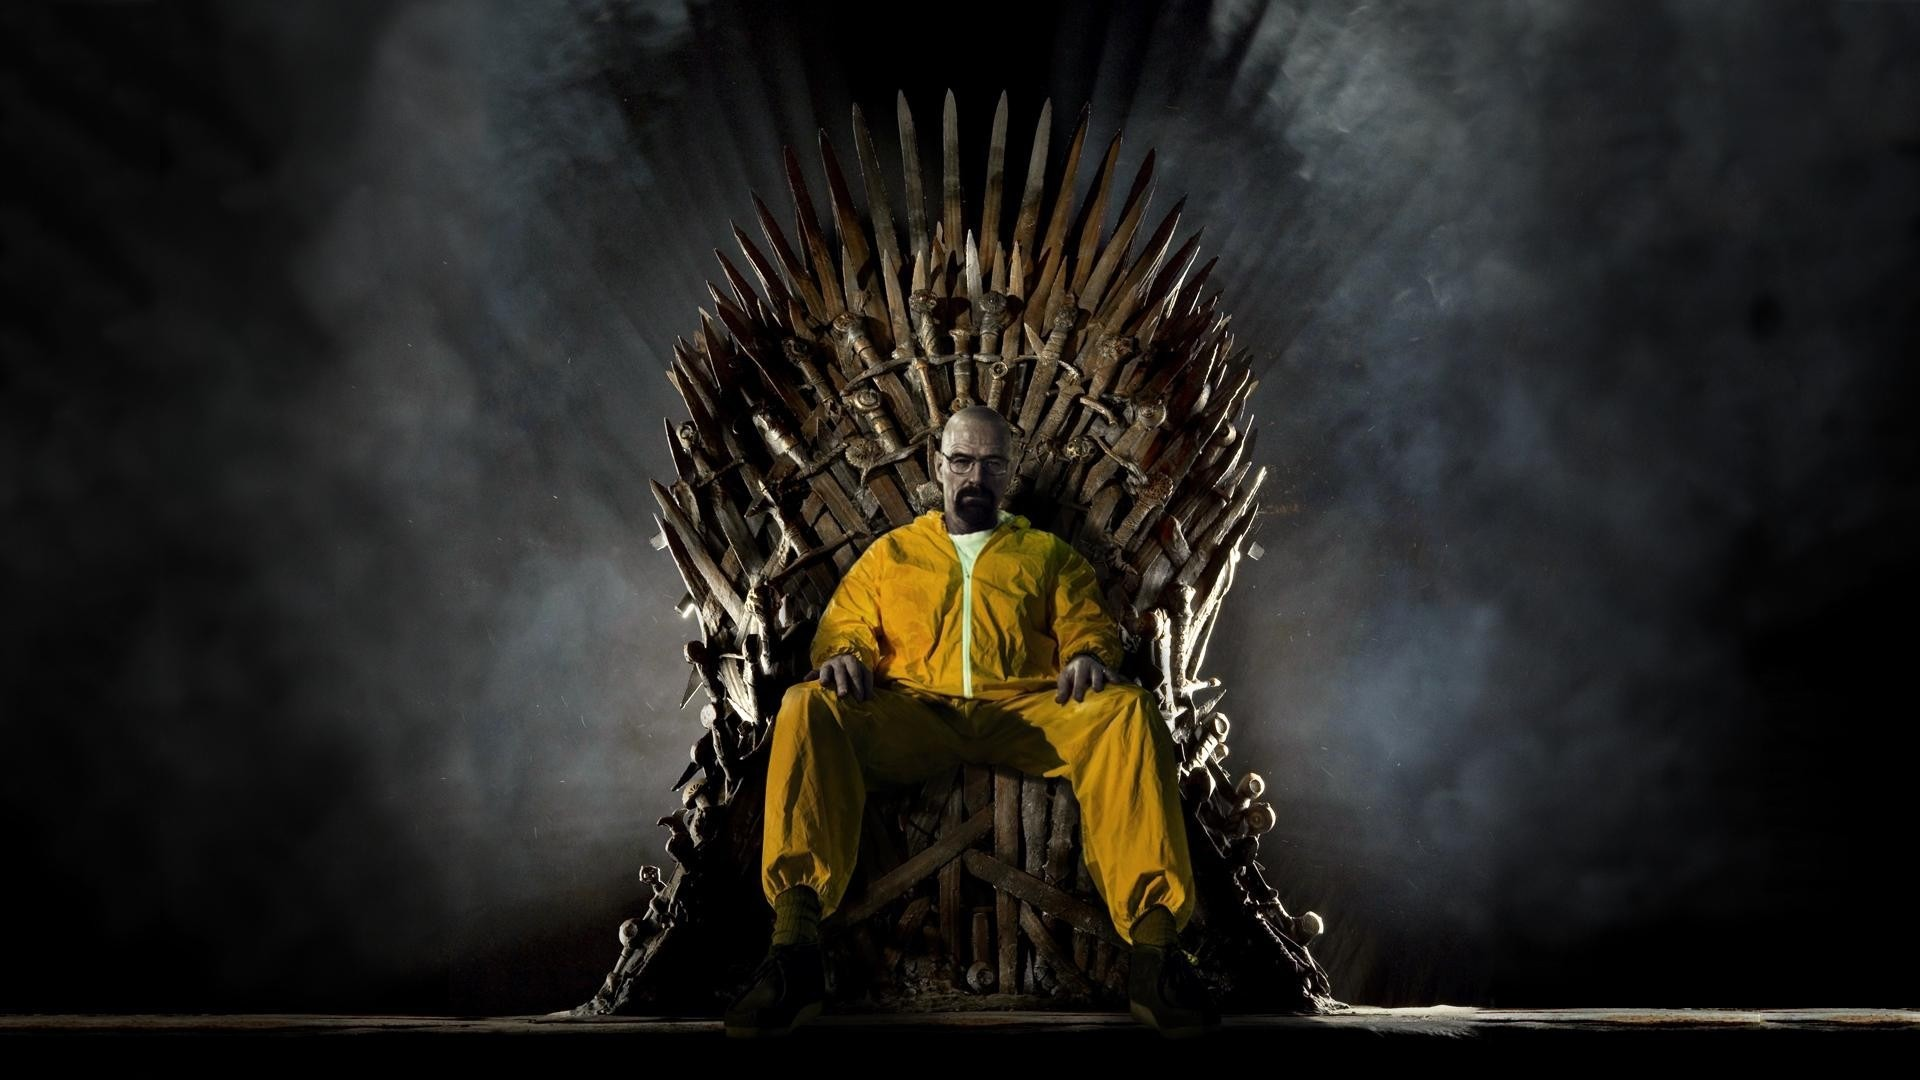 1920x1080 Walter White on the Iron Throne Wallpaper - Breaking Bad, Game of Thrones,  Song